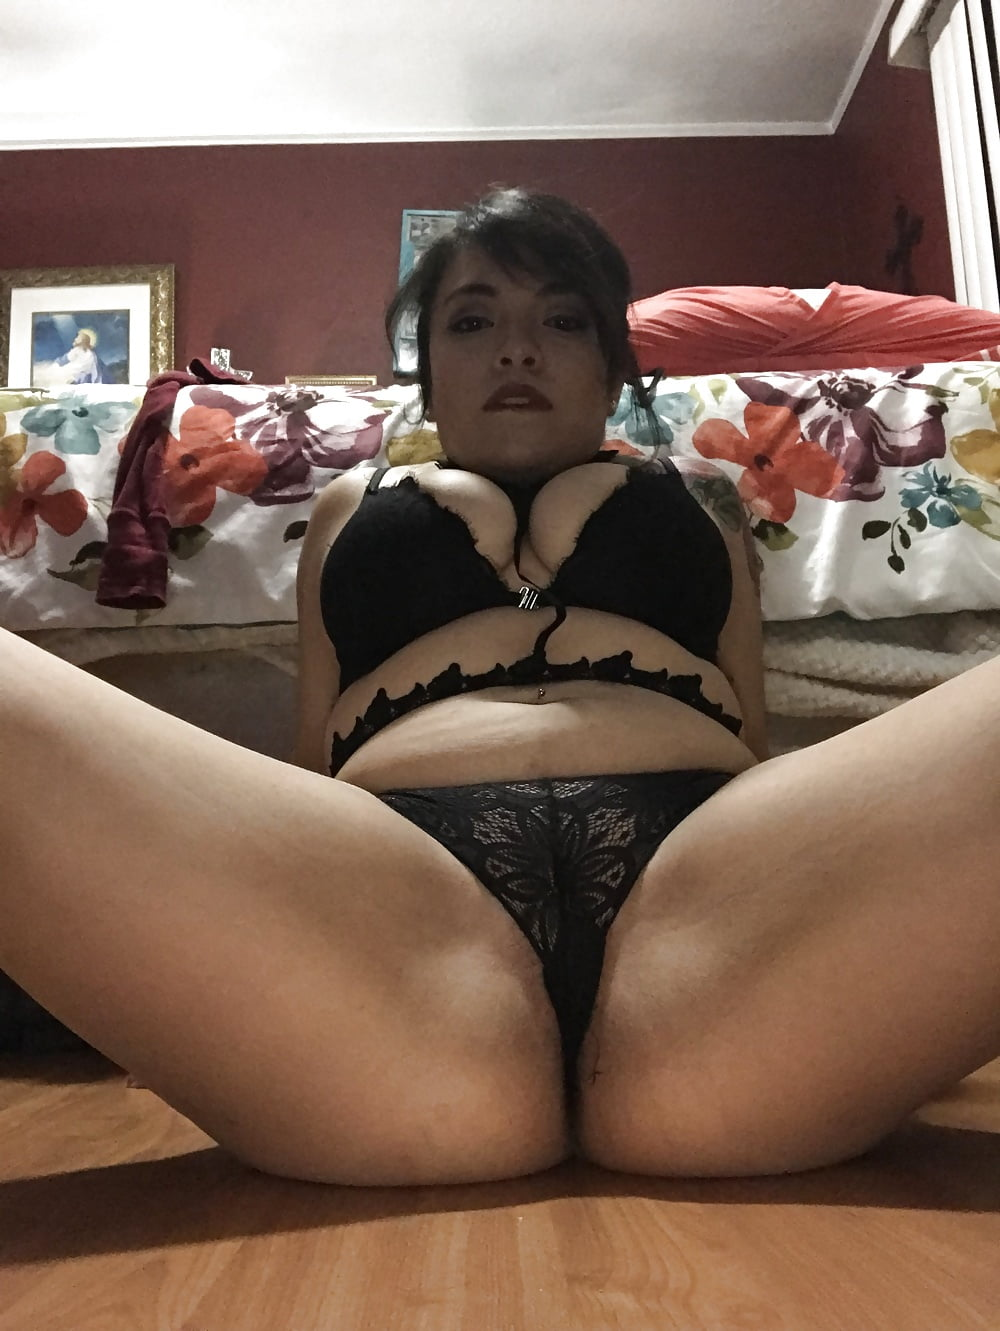 Ass Chubby Porn see and save as bbw big ass chubby slut porn pict - 4crot